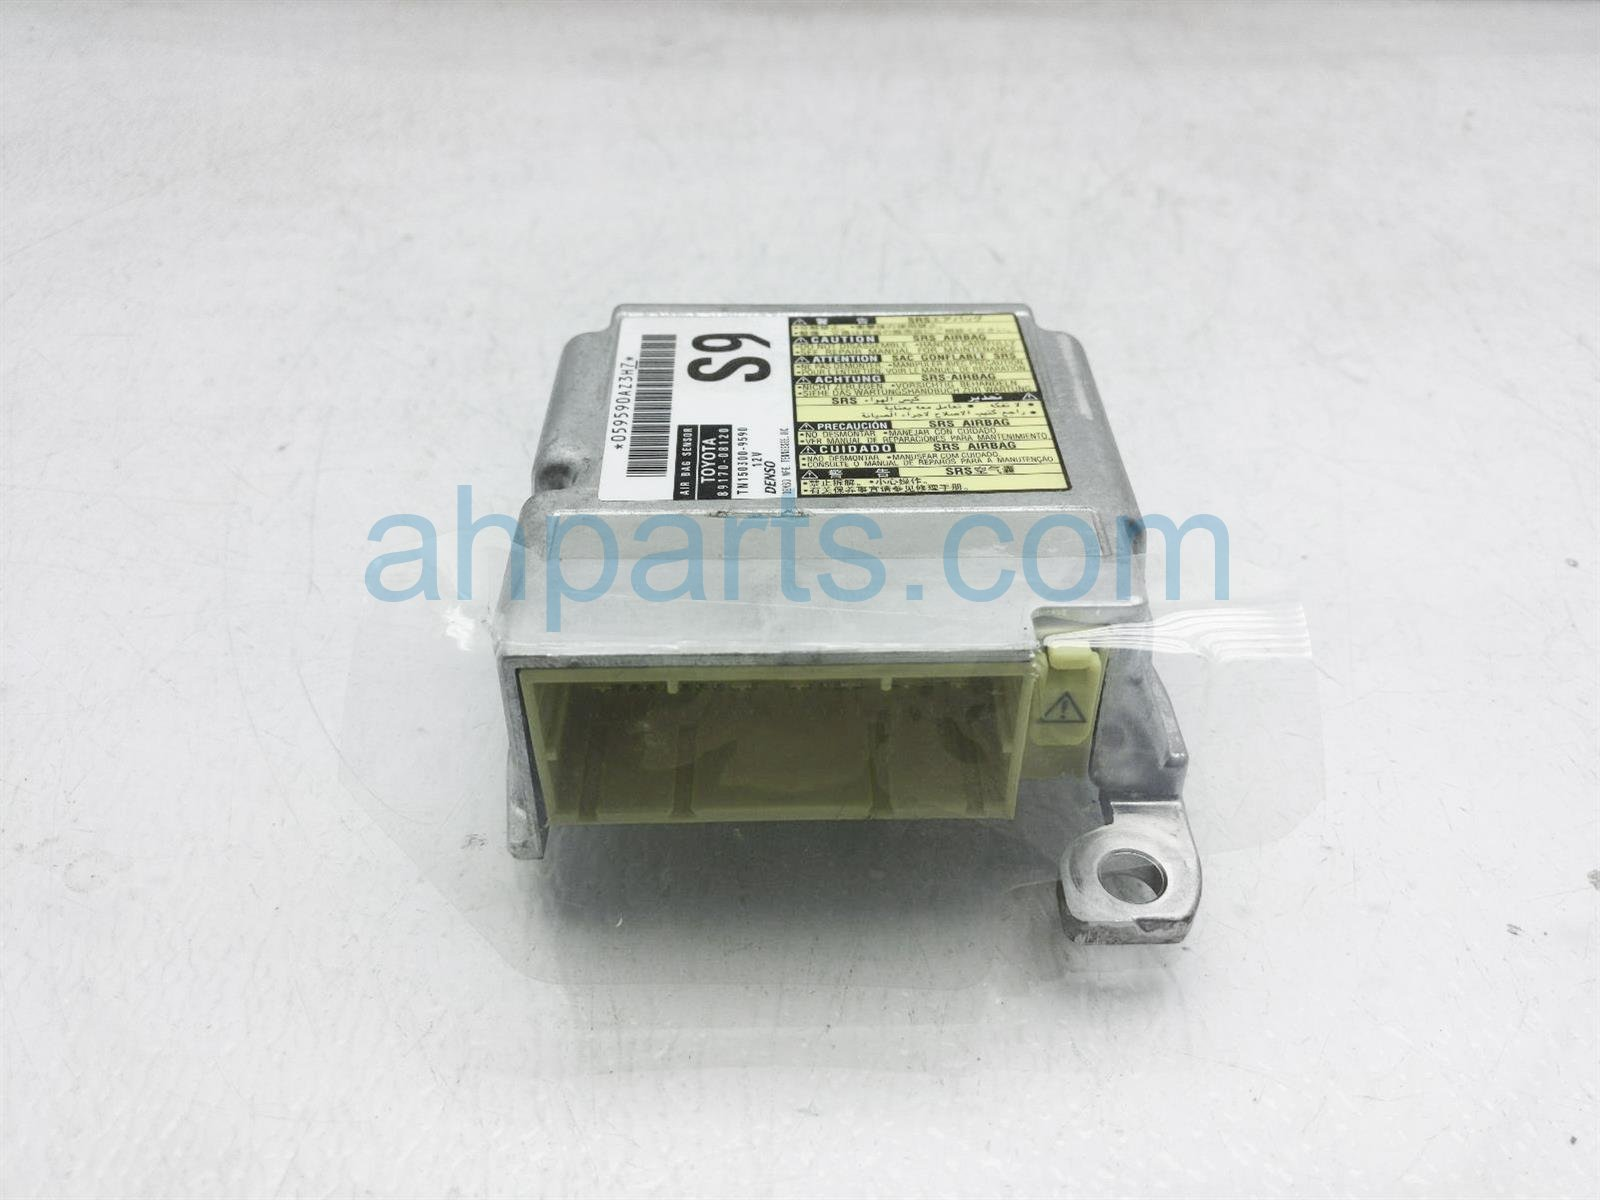 2013 Toyota Sienna Srs Air Bag Computer Module 89170 08150 Replacement